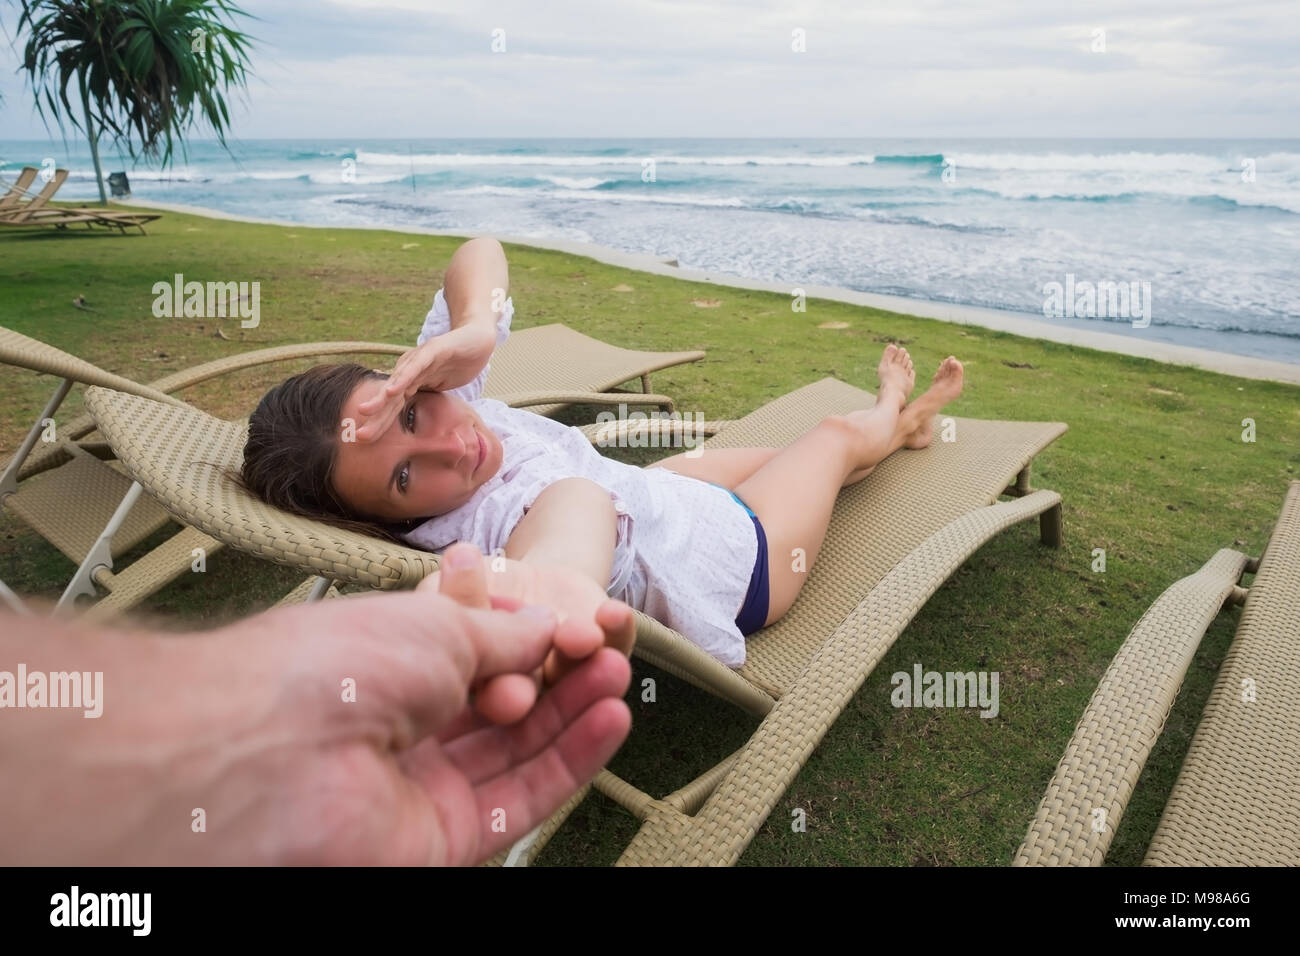 Caucasian Woman In Chair Near Beach Holding Her Husband Hand Follow Me Concept Having Great Vacation Near Seashore In Hotel Stock Photo Alamy